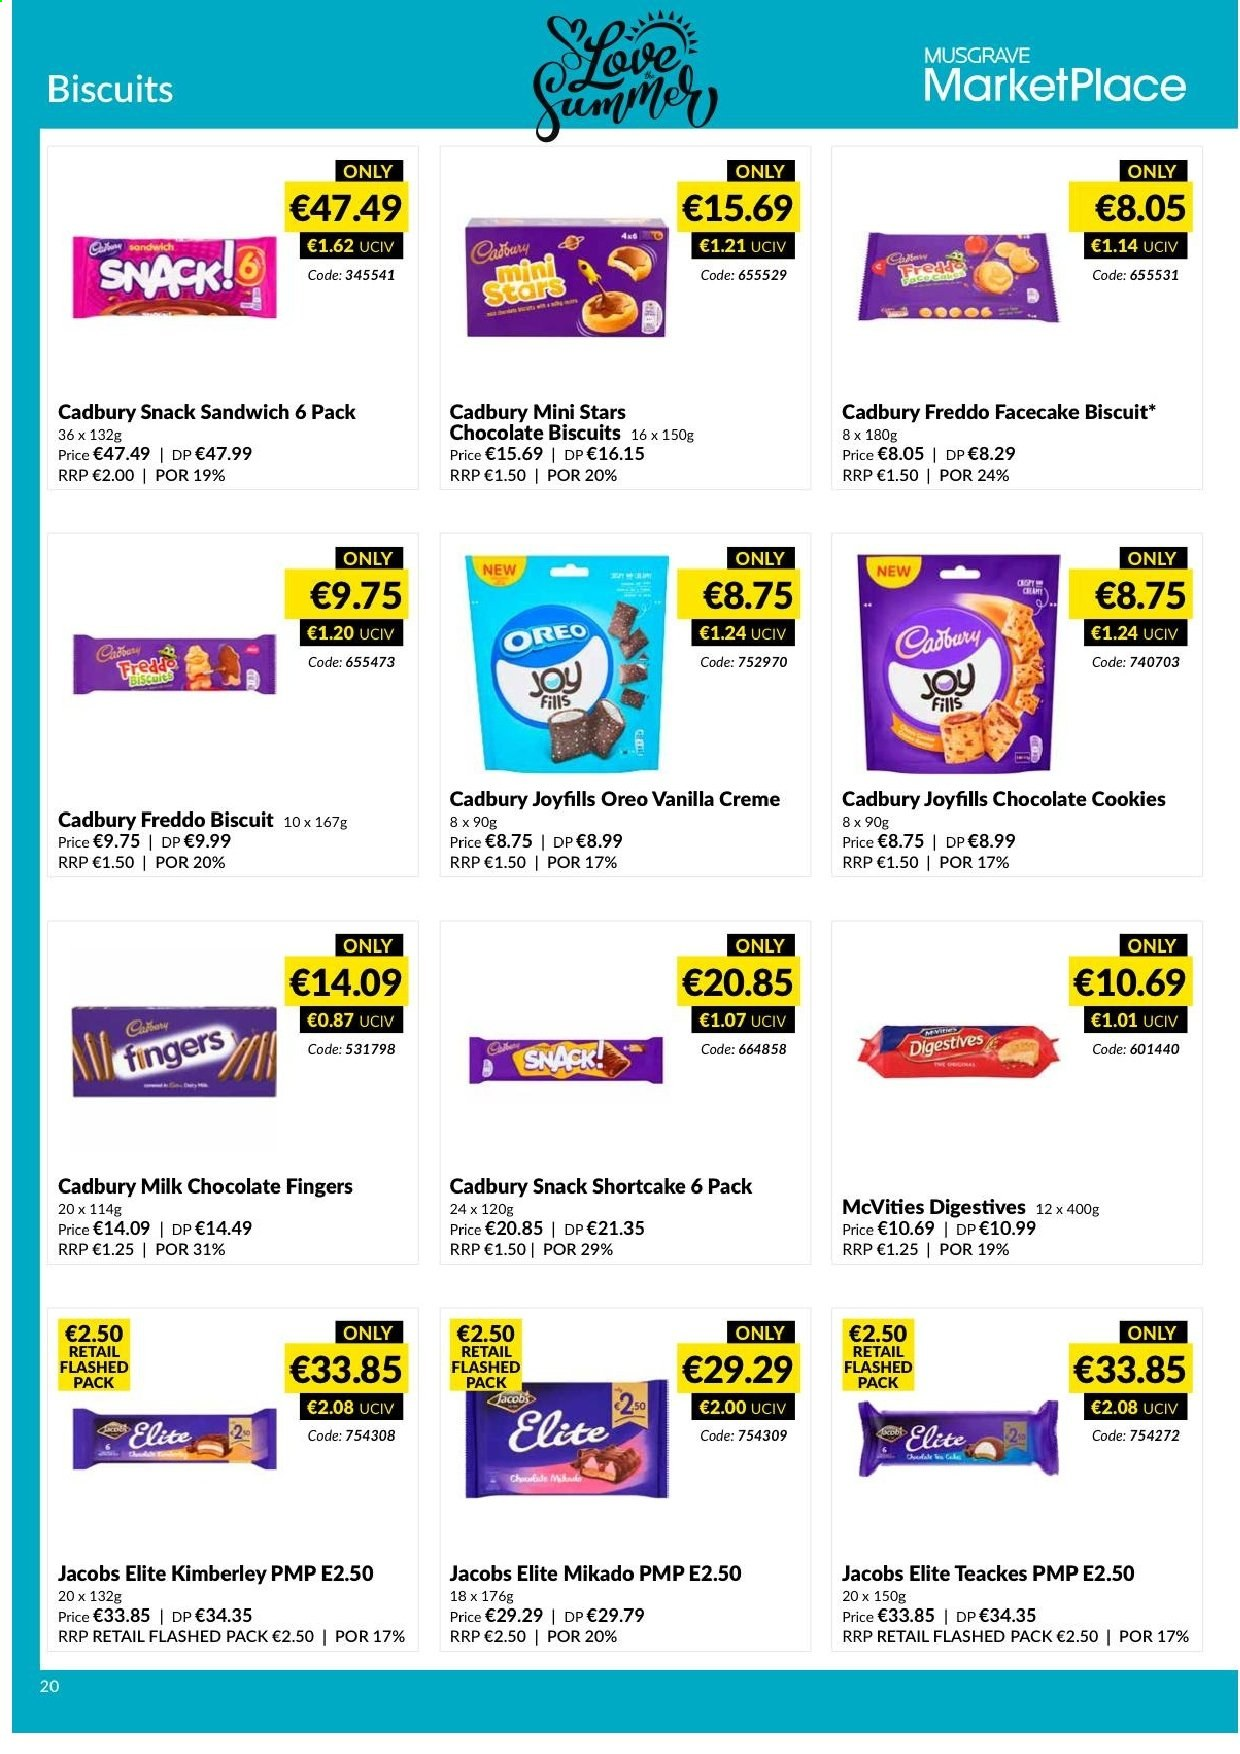 MUSGRAVE Market Place offer  - 9.6.2019 - 6.7.2019 - Sales products - sandwich, Oreo, biscuits, cookies, milk chocolate, chocolate, chocolate cookies, snack, Jacobs. Page 21.